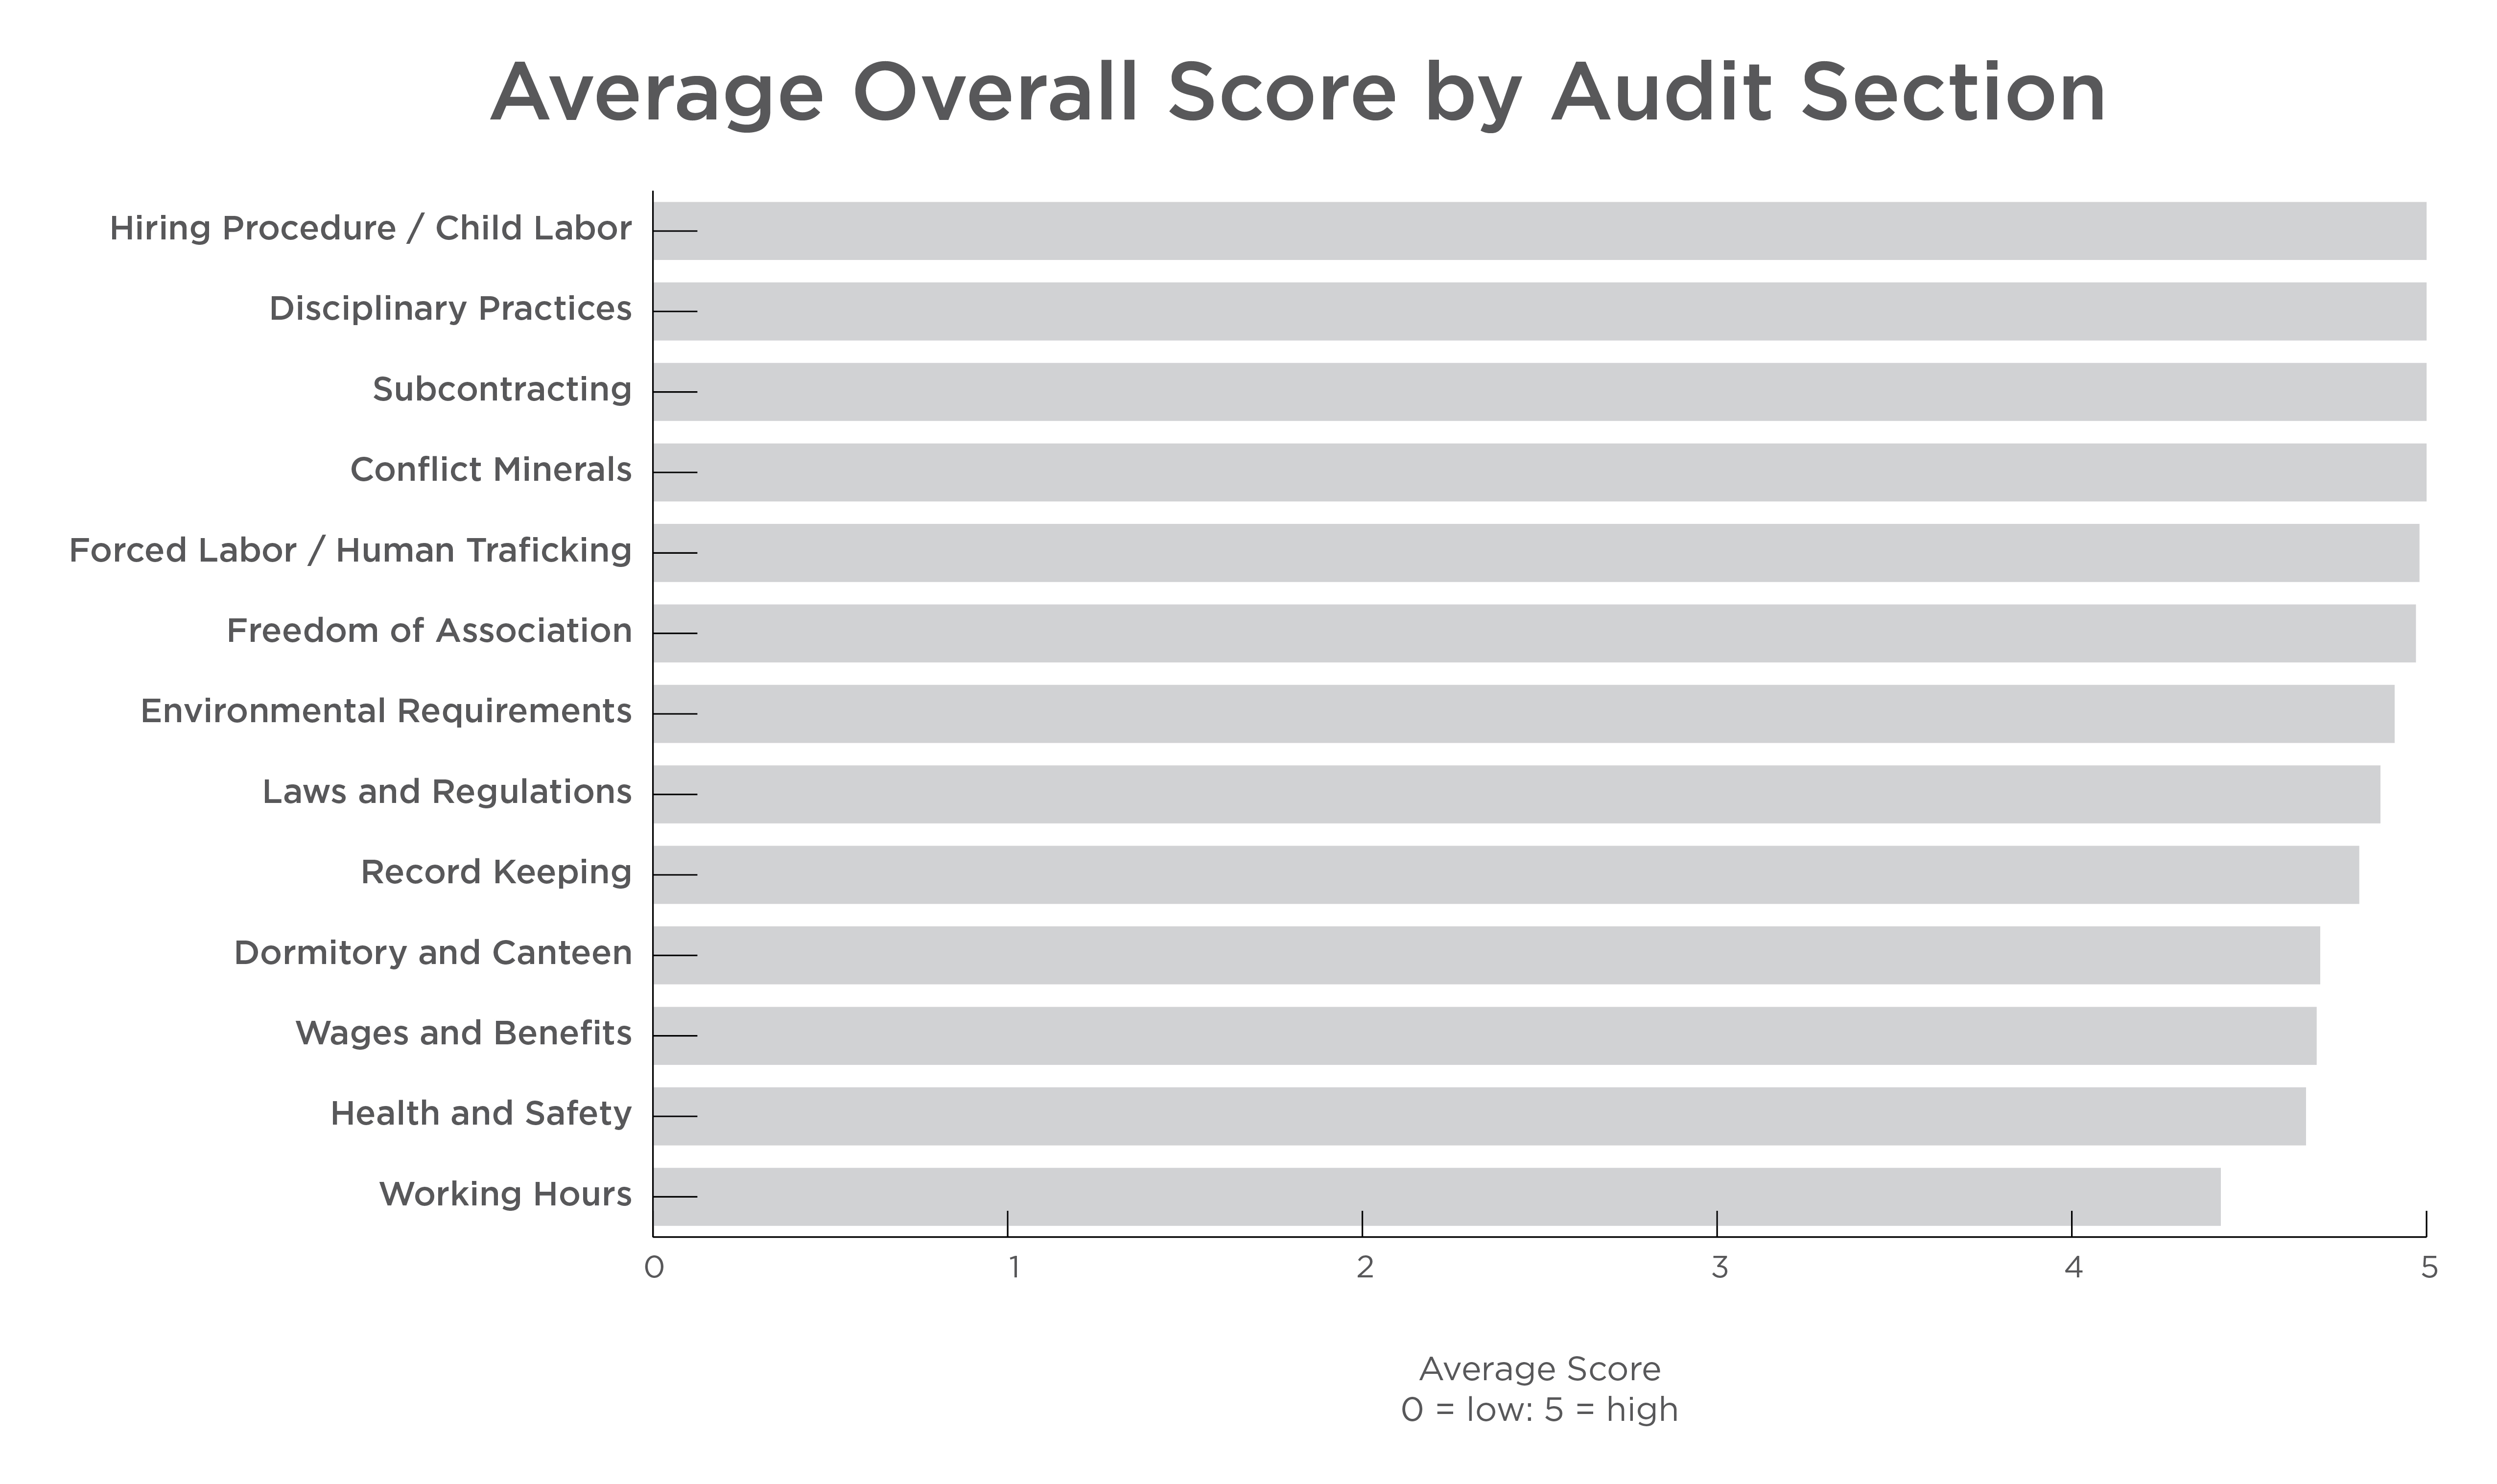 Average Overall Score by Audit Section